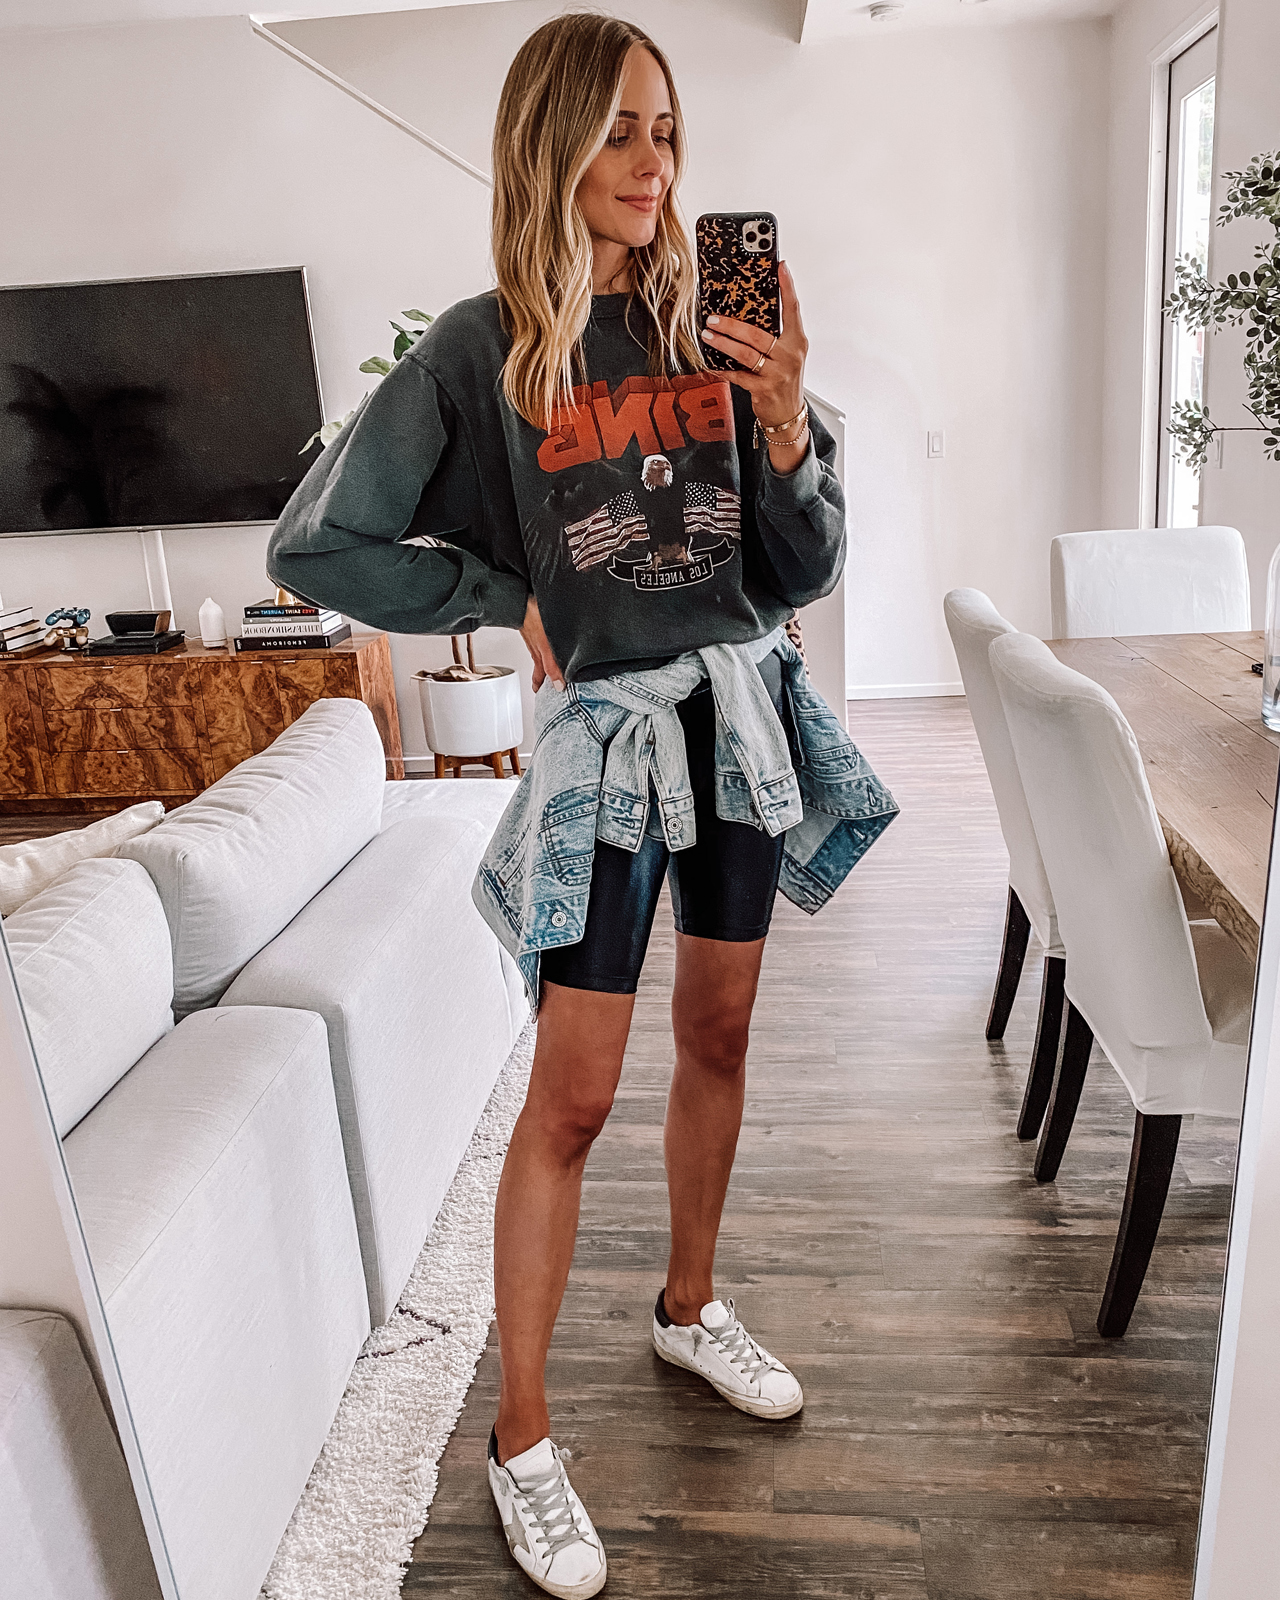 Anine Bing Outfit Style Guide How To Wear Bing Sweatshirts Graphic Tees More